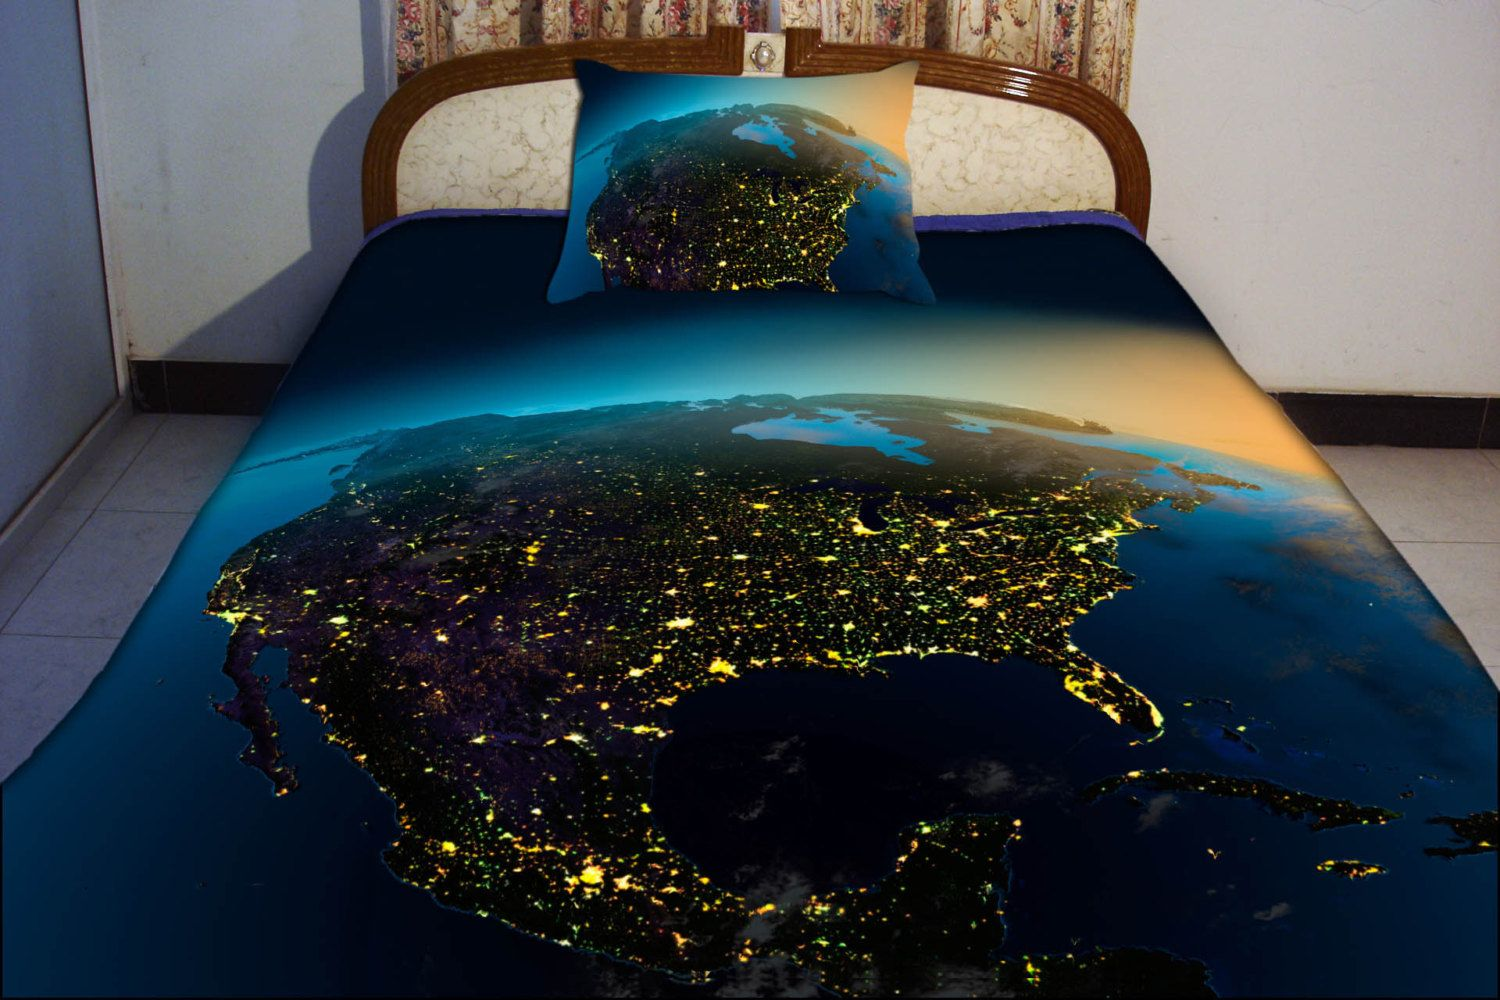 North america night vision map duvet cover us map by tbedding north america night vision map duvet cover us map bedding set map quilt cover and two america map pillow covers us nightlight map comforter gumiabroncs Image collections